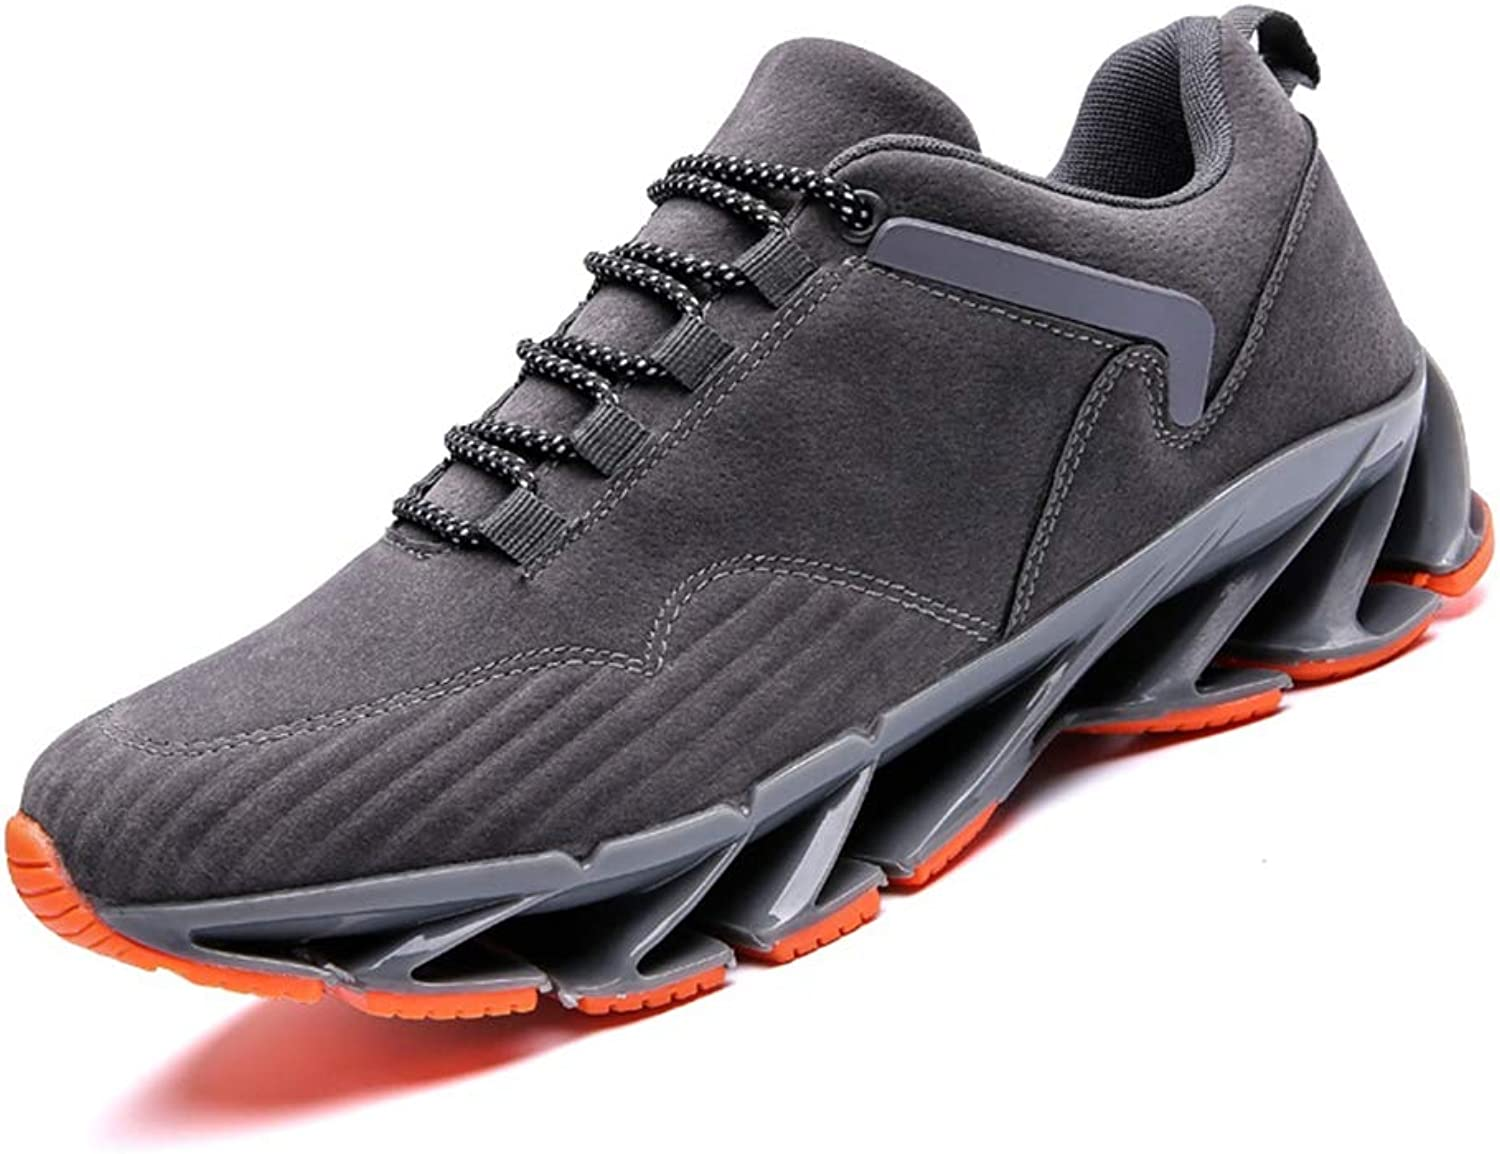 Mens Non-Slip Trainers Spring Casual shoes Suede Leather Sneakers Breathable Sports Running shoes